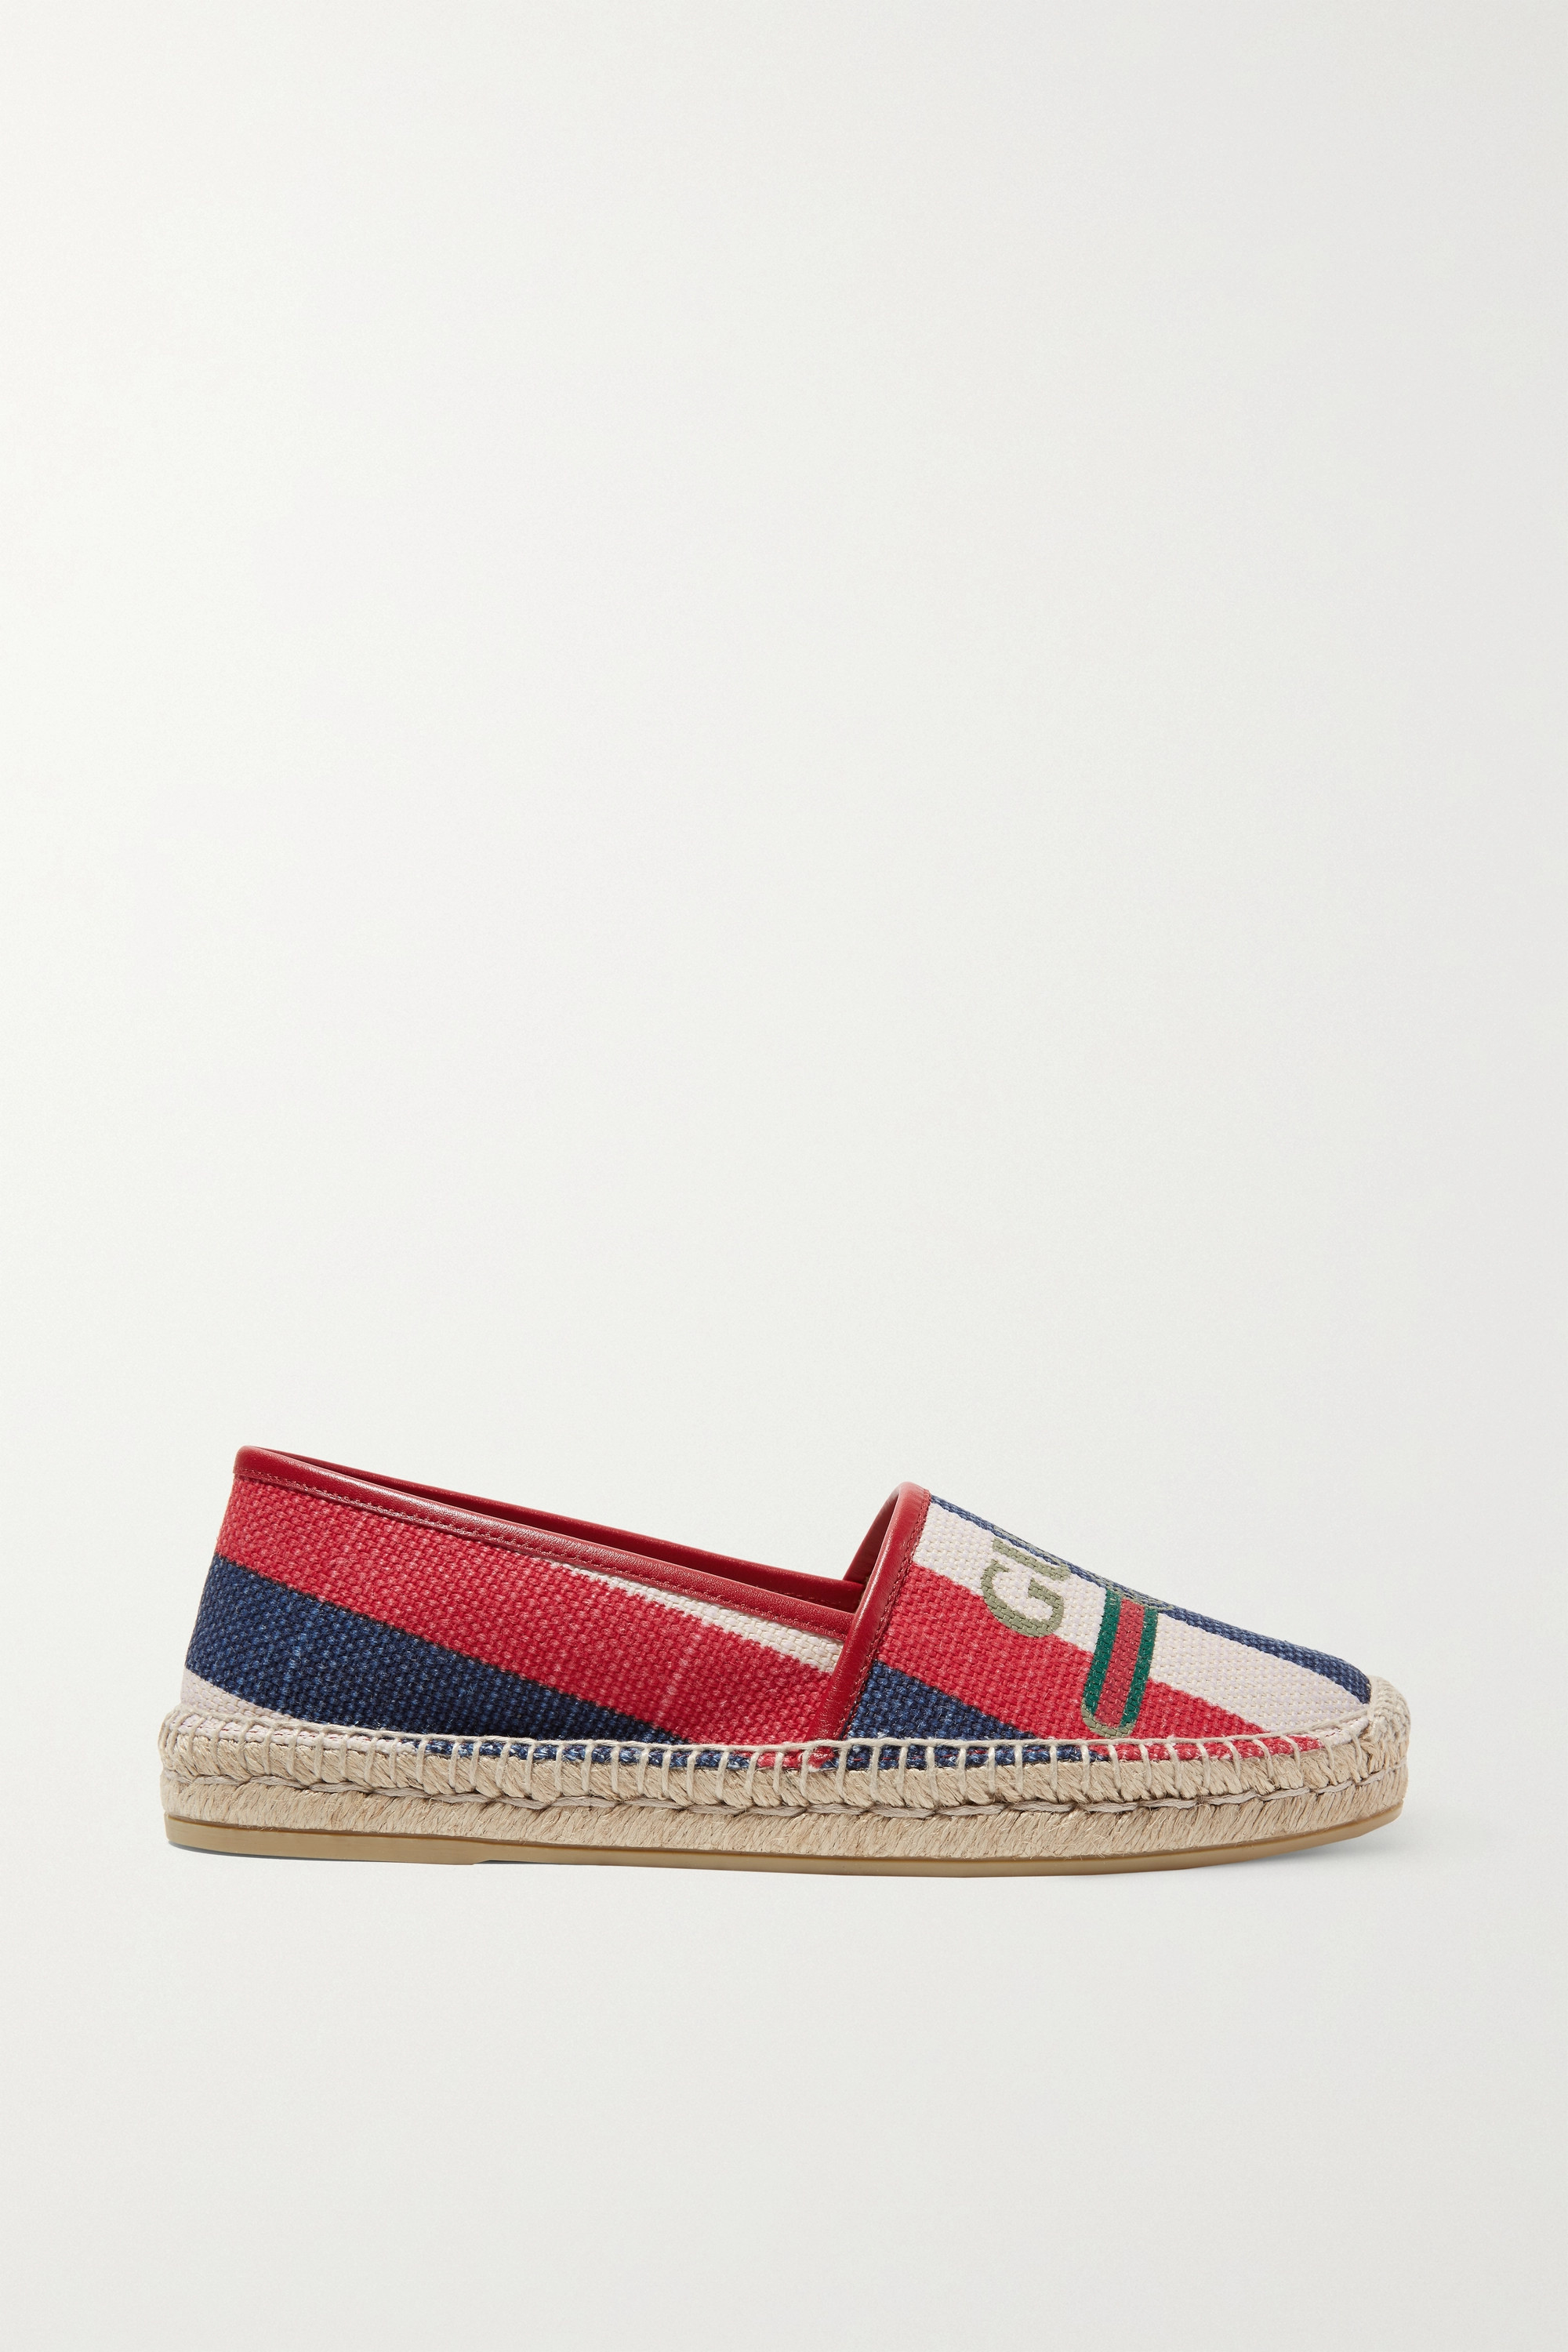 Gucci Leather-trimmed striped logo-print canvas espadrilles